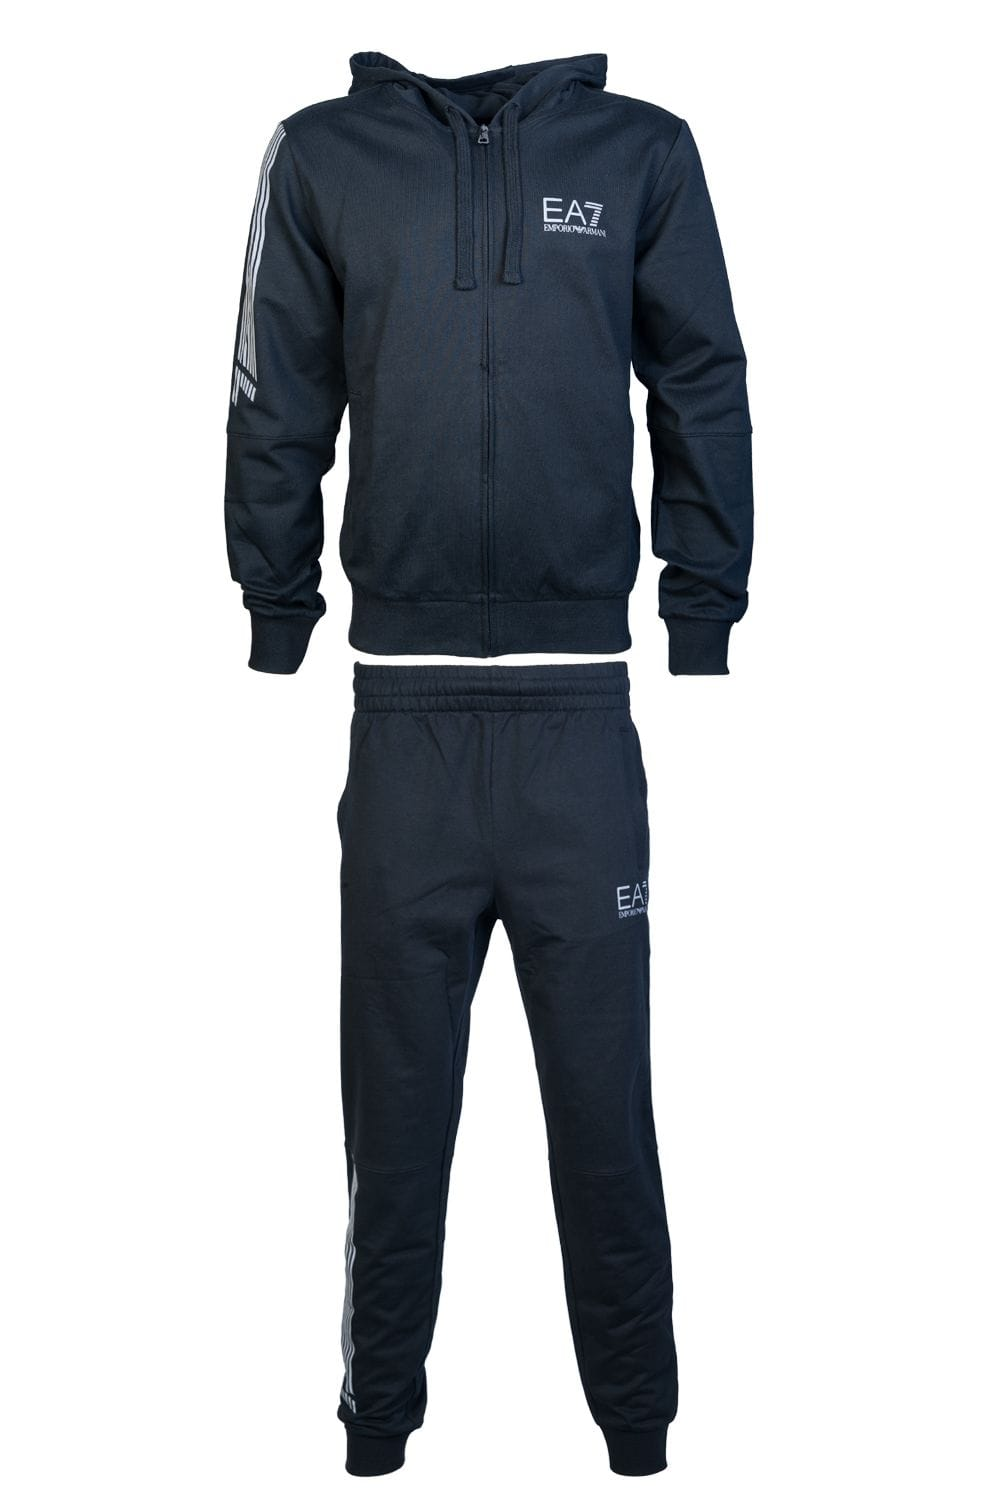 Clothing, Shoes & Accessories Mens Armani Tracksuit Size Xl Ea7 Emporio Armani Tracksuits & Sets